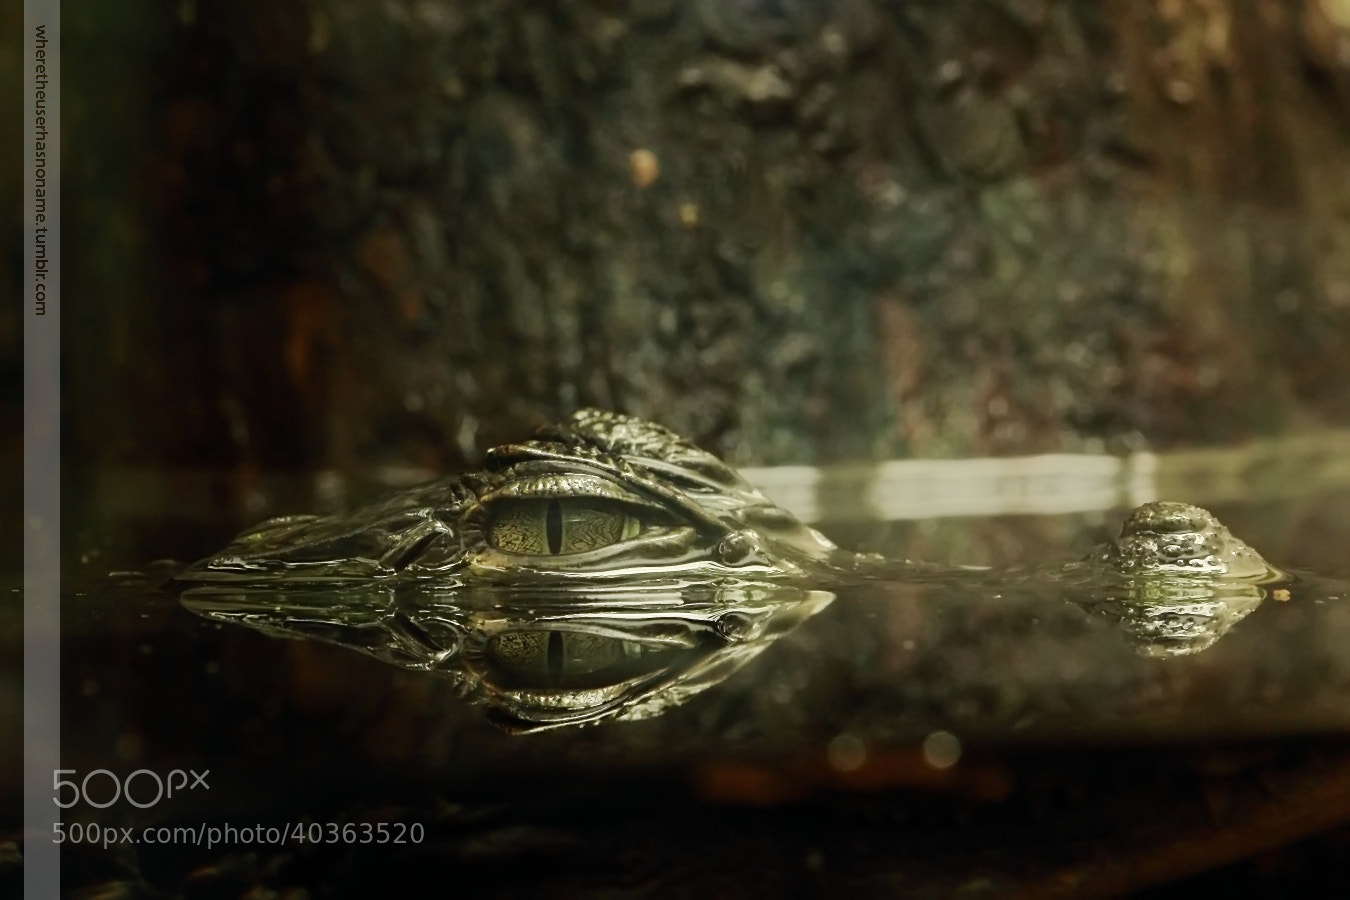 Photograph Common caiman in captivity by where the user has no names on 500px